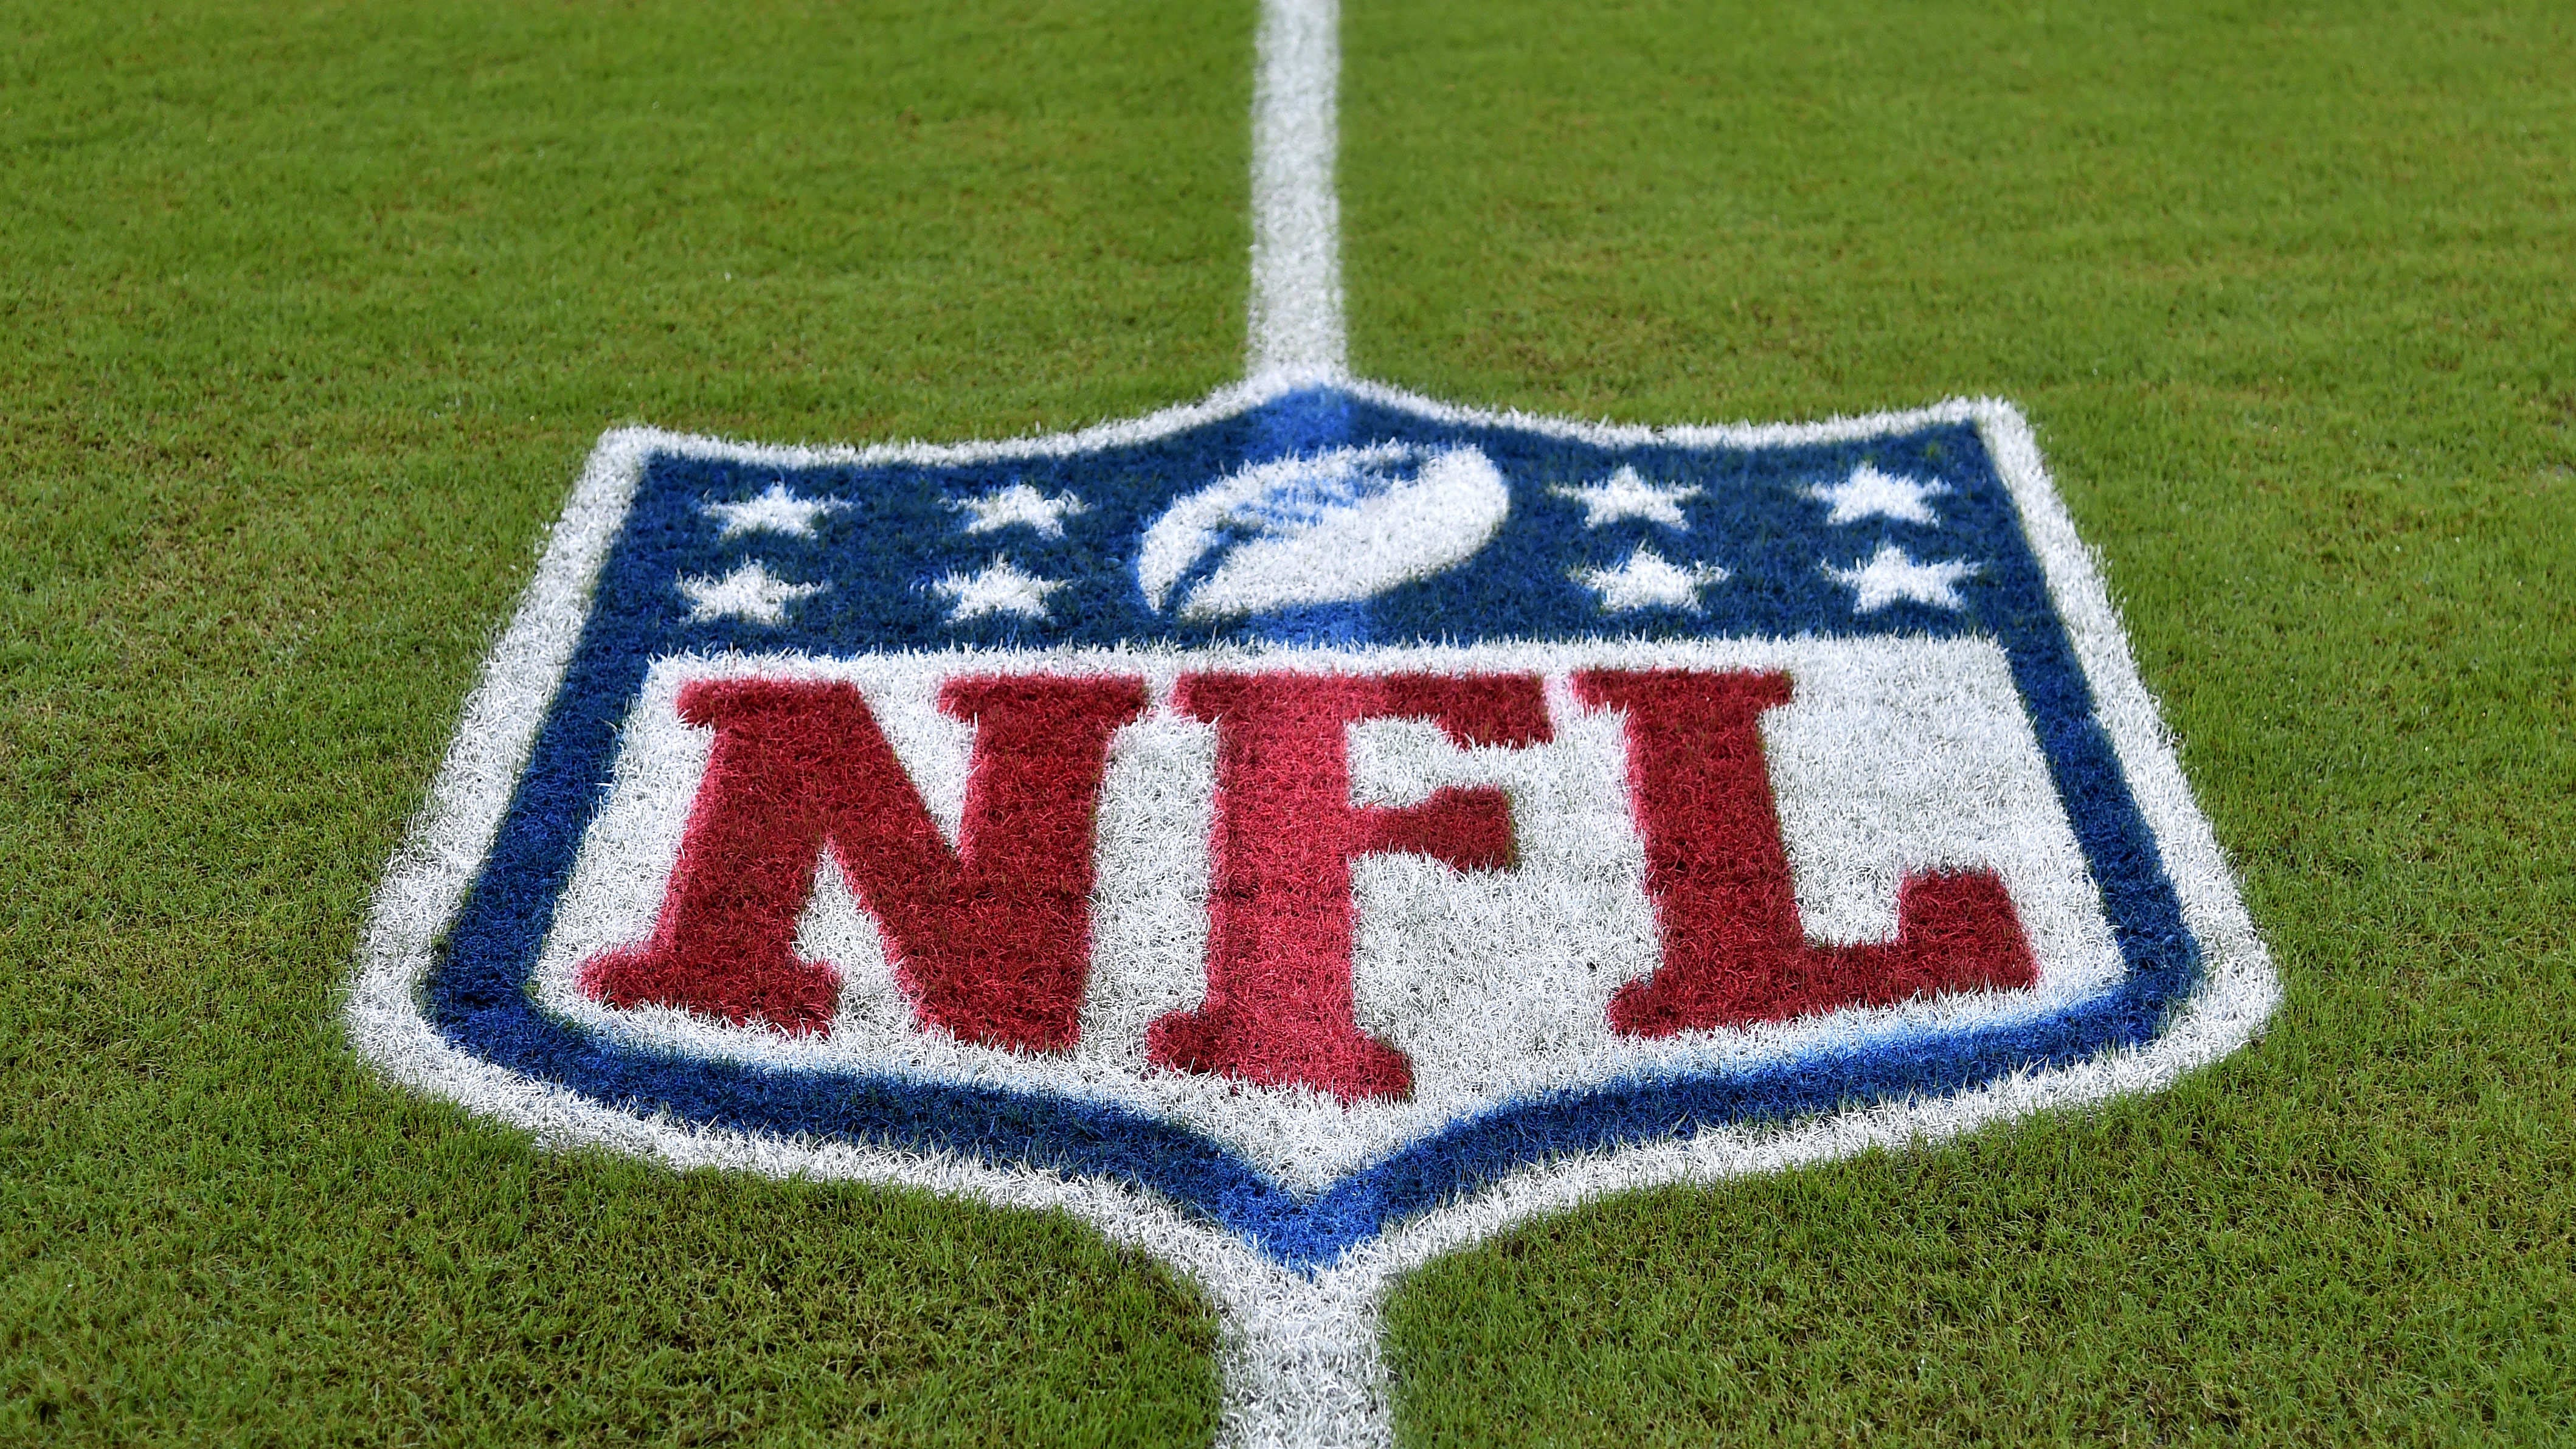 The NFL logo is seen on the field before a game.